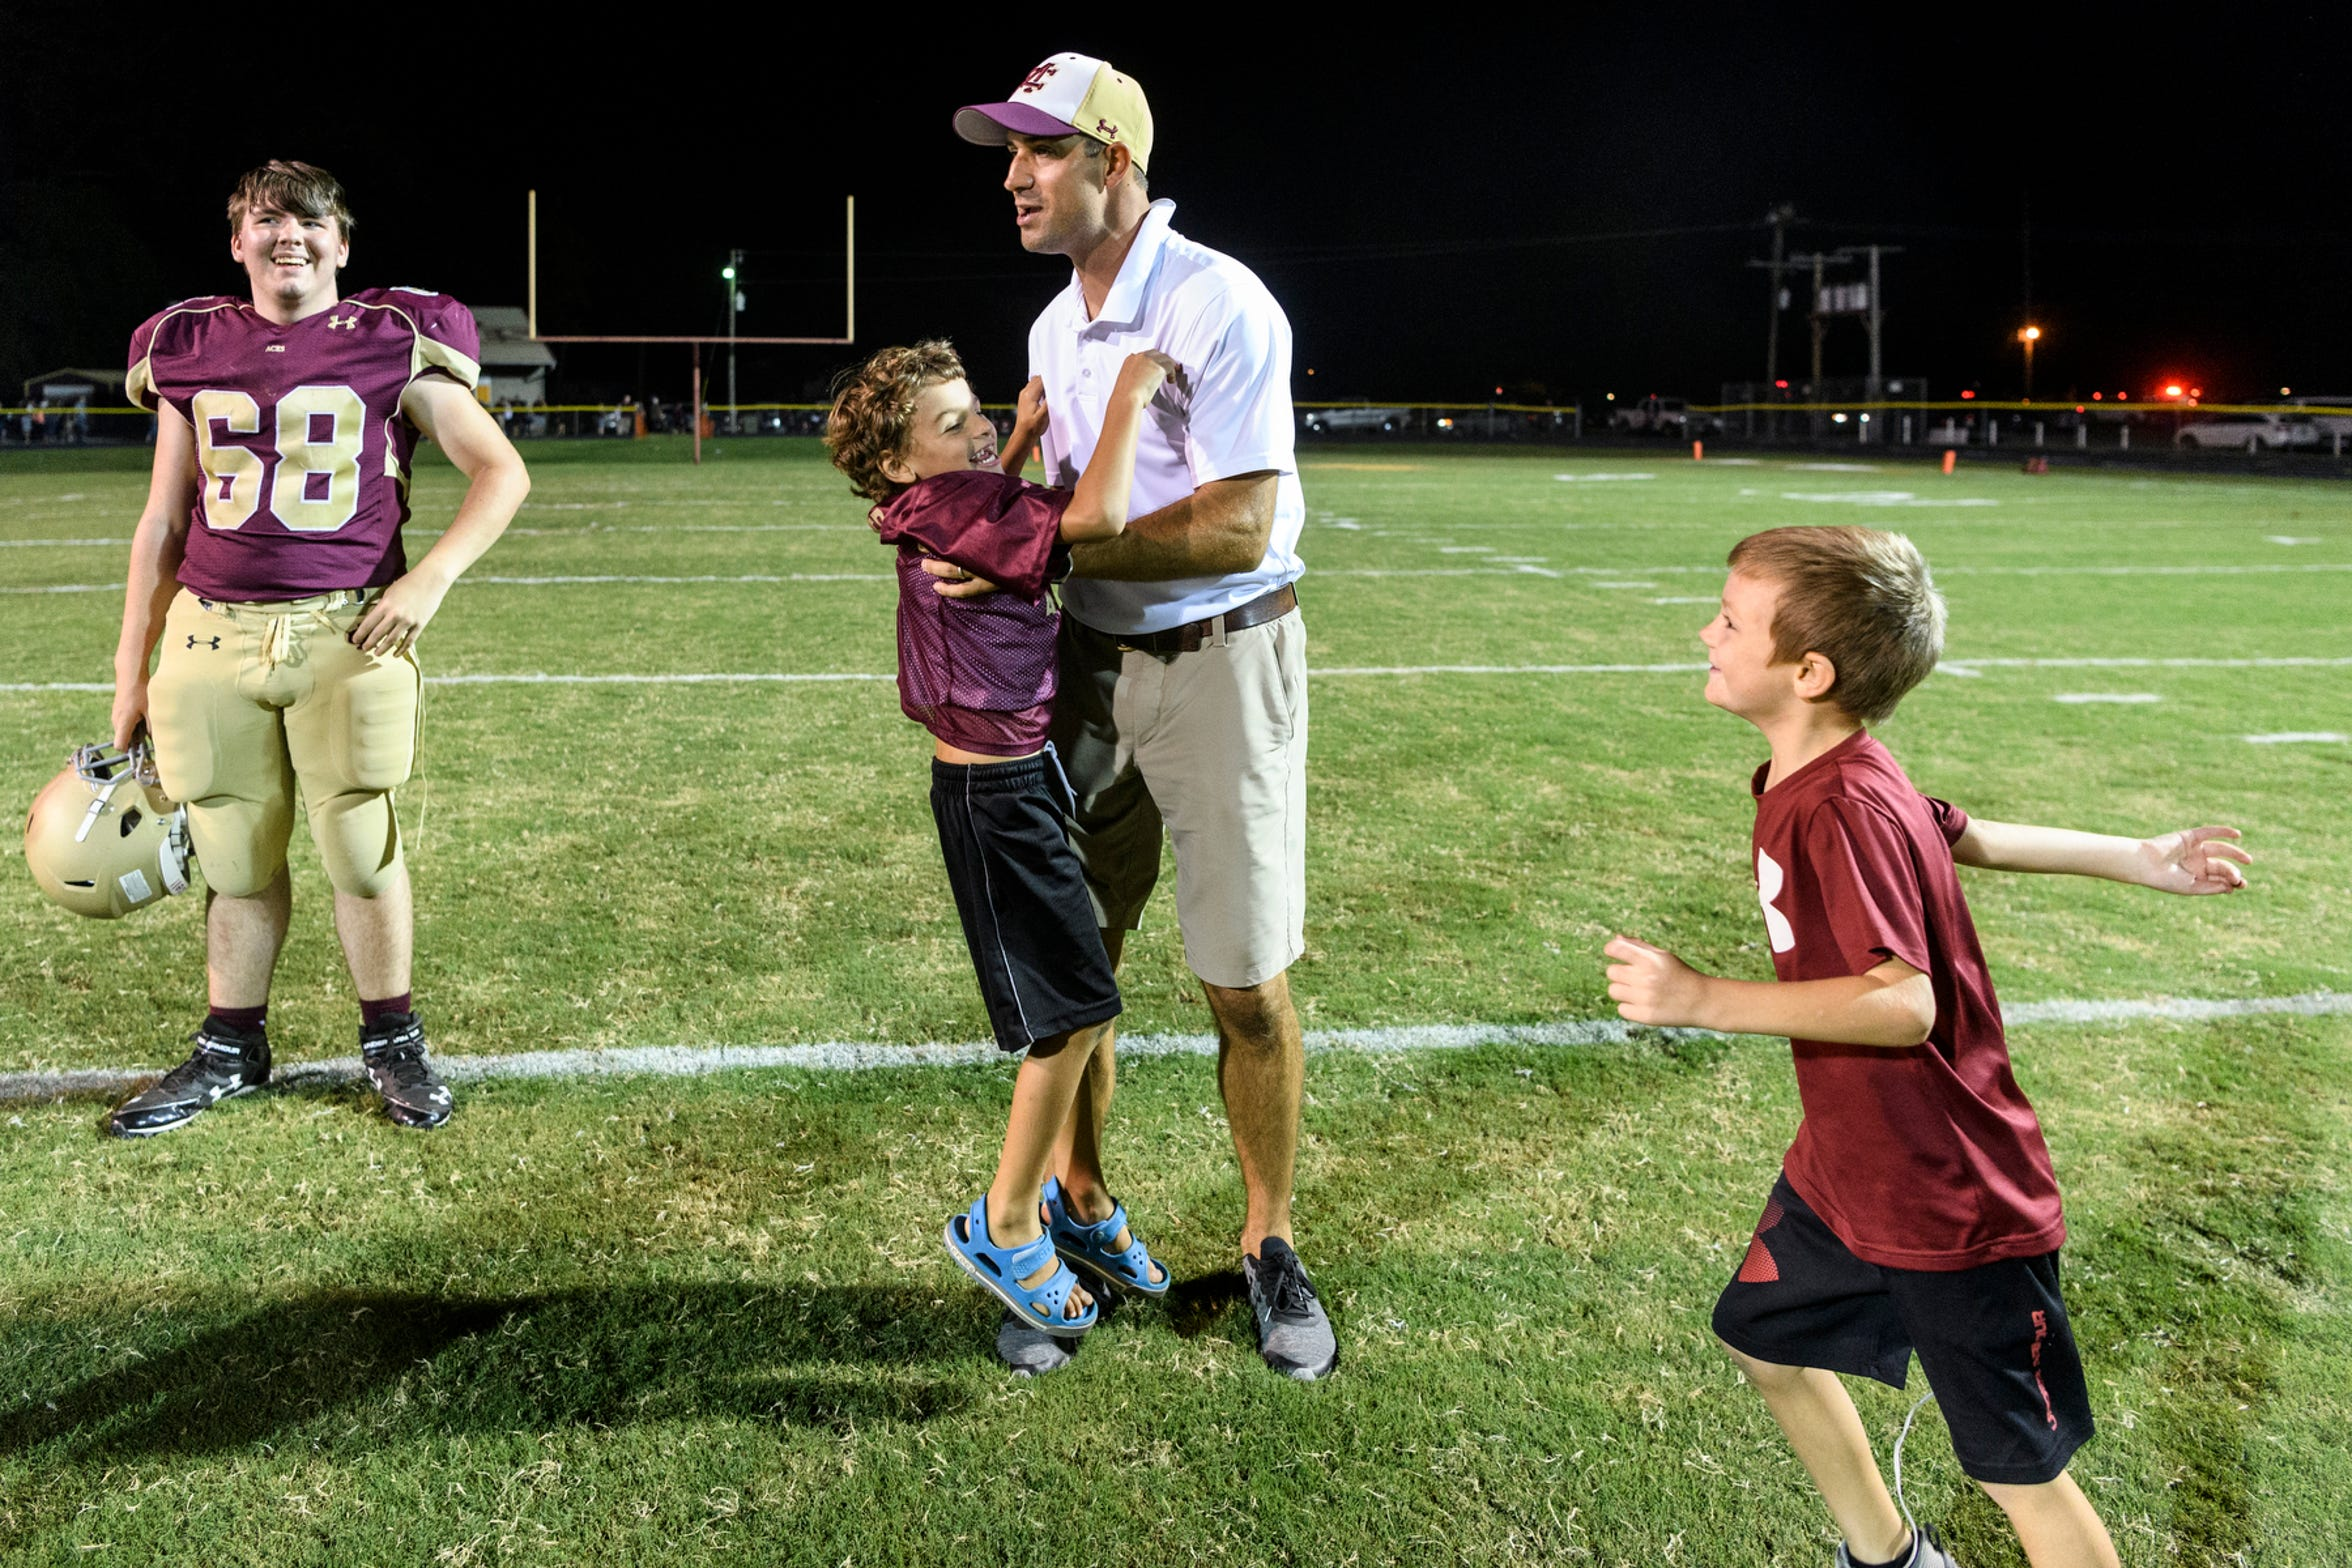 Mount Carmel Head Coach Michael Brewer, center right, is greeted by two of his children, James Brewer, center left, and Judah Brewer, right, after the Golden Aces beat the Washington Hatchets 61-20 at Riverview Stadium, known as the Snake Pit, in Mount Carmel, Ill., Friday, Sept. 21, 2018.